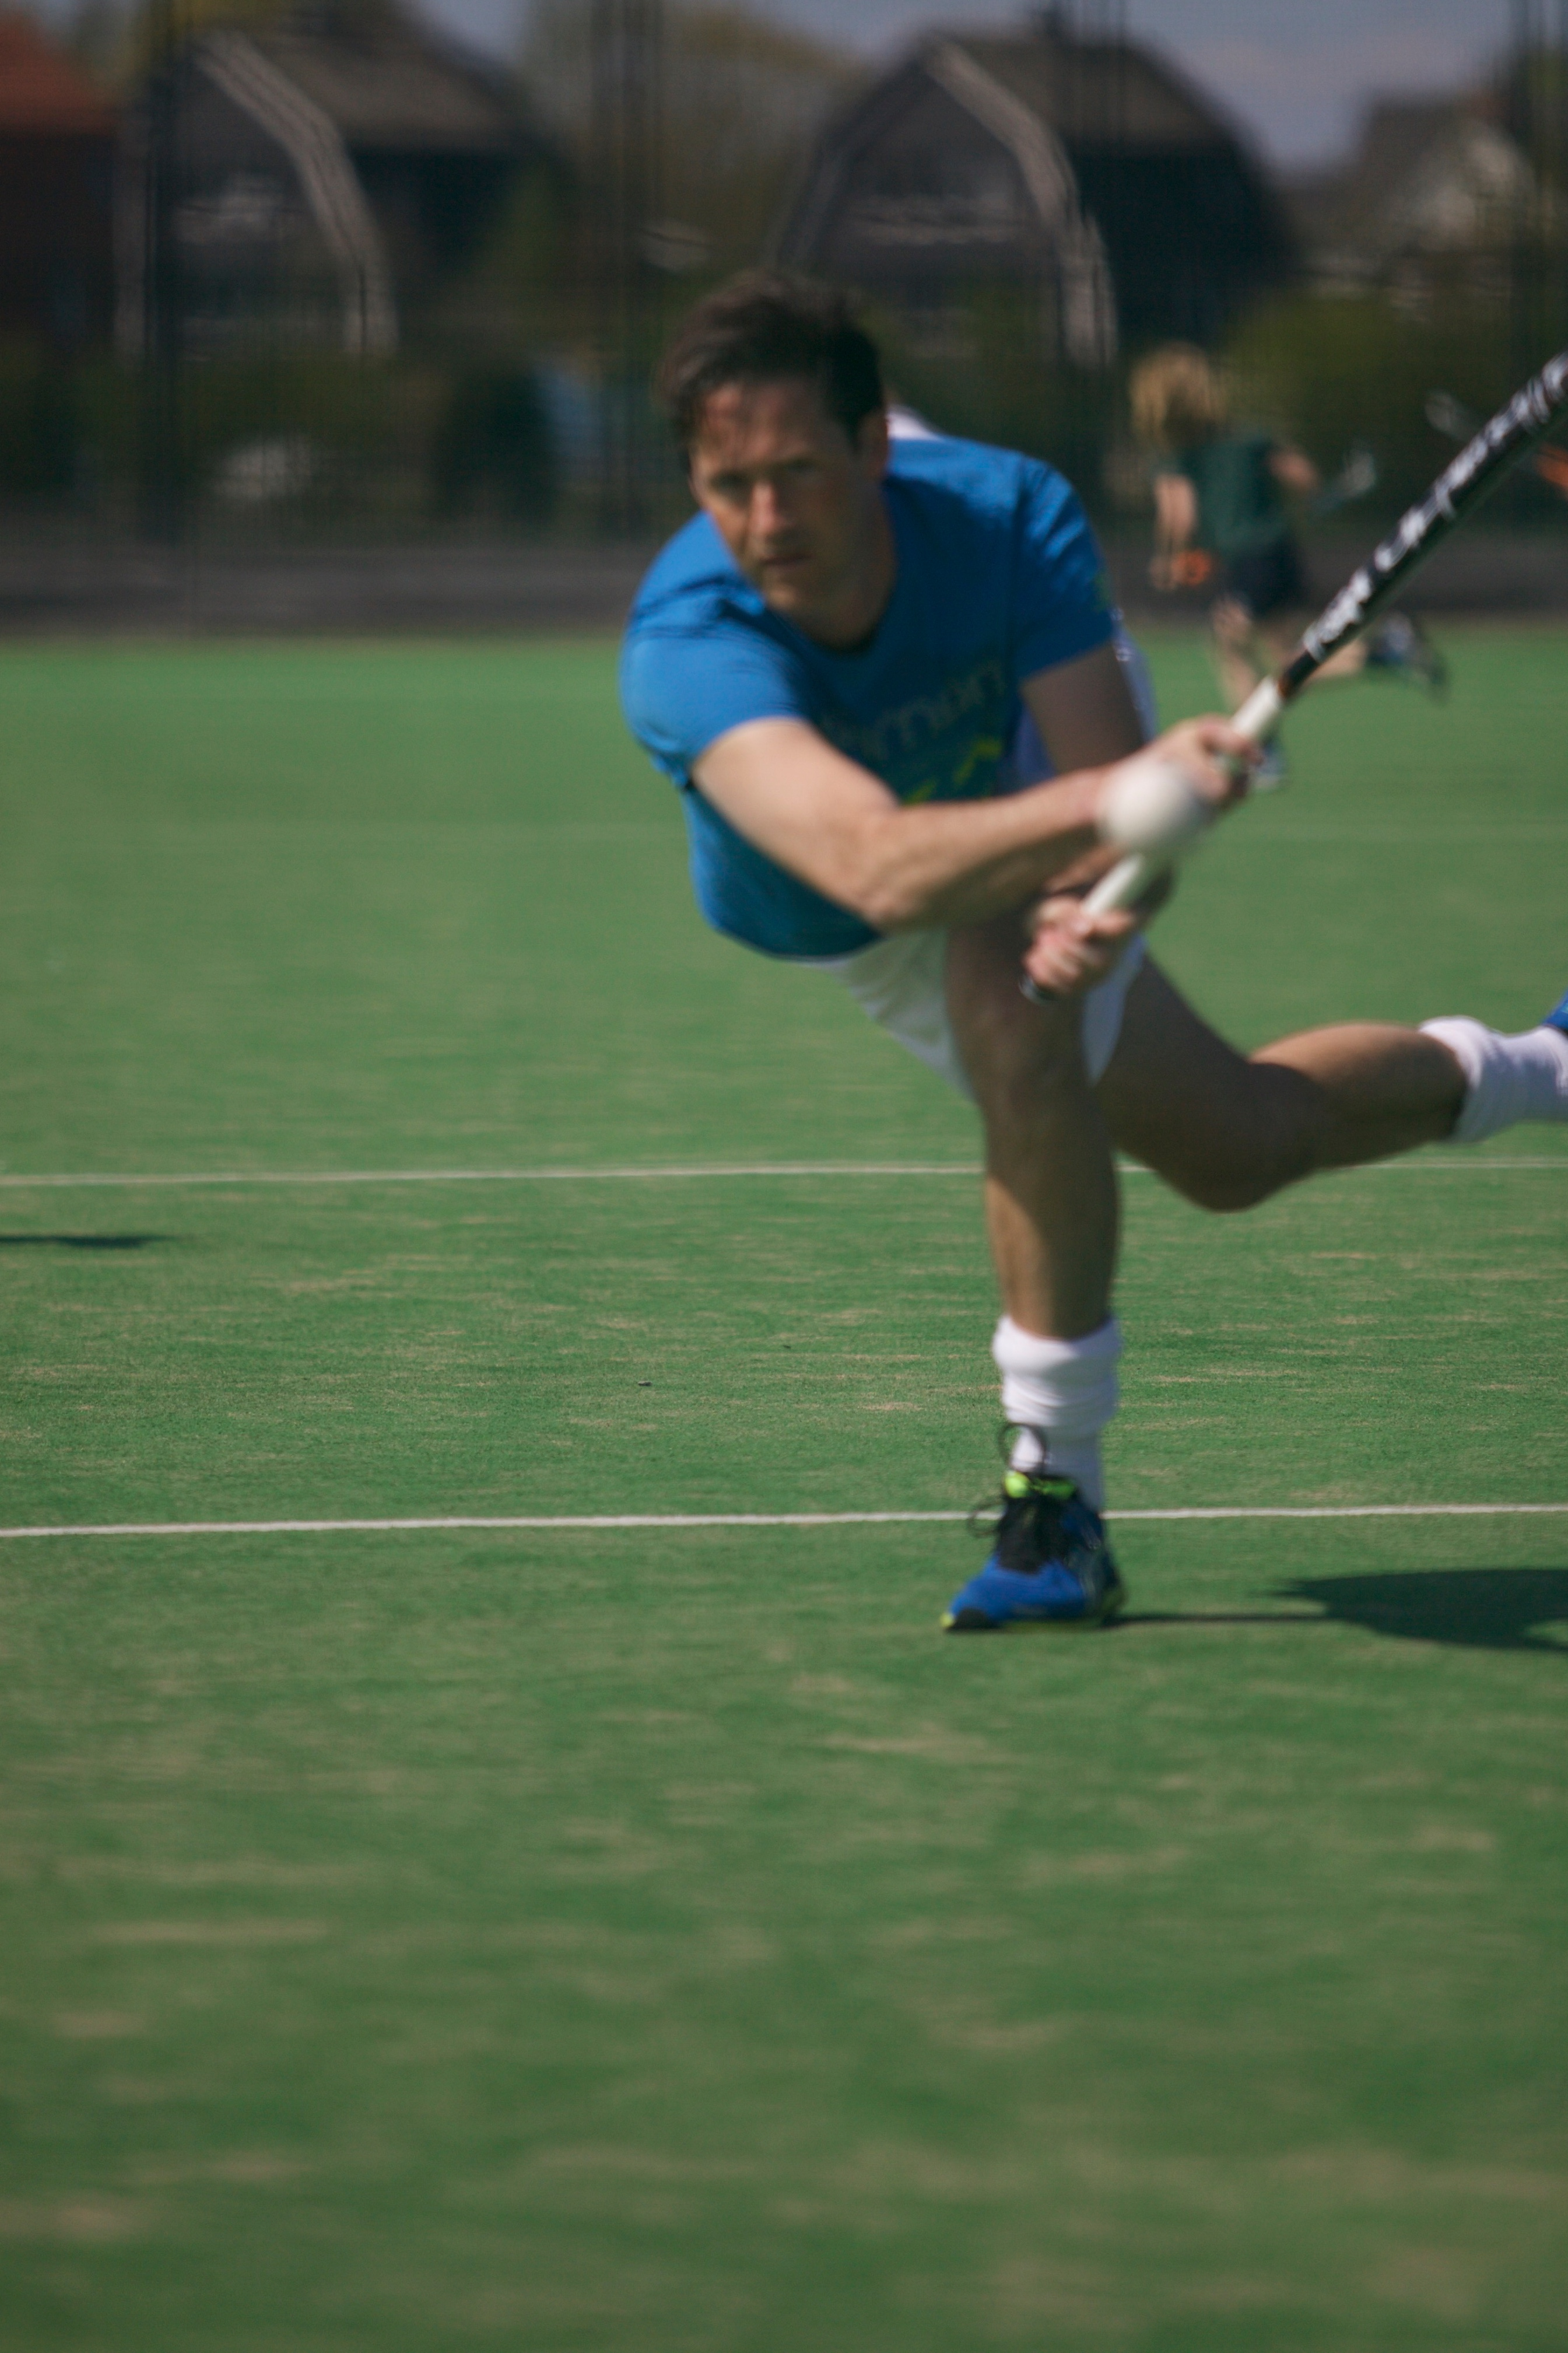 Joost ball in the air drag flick.jpg